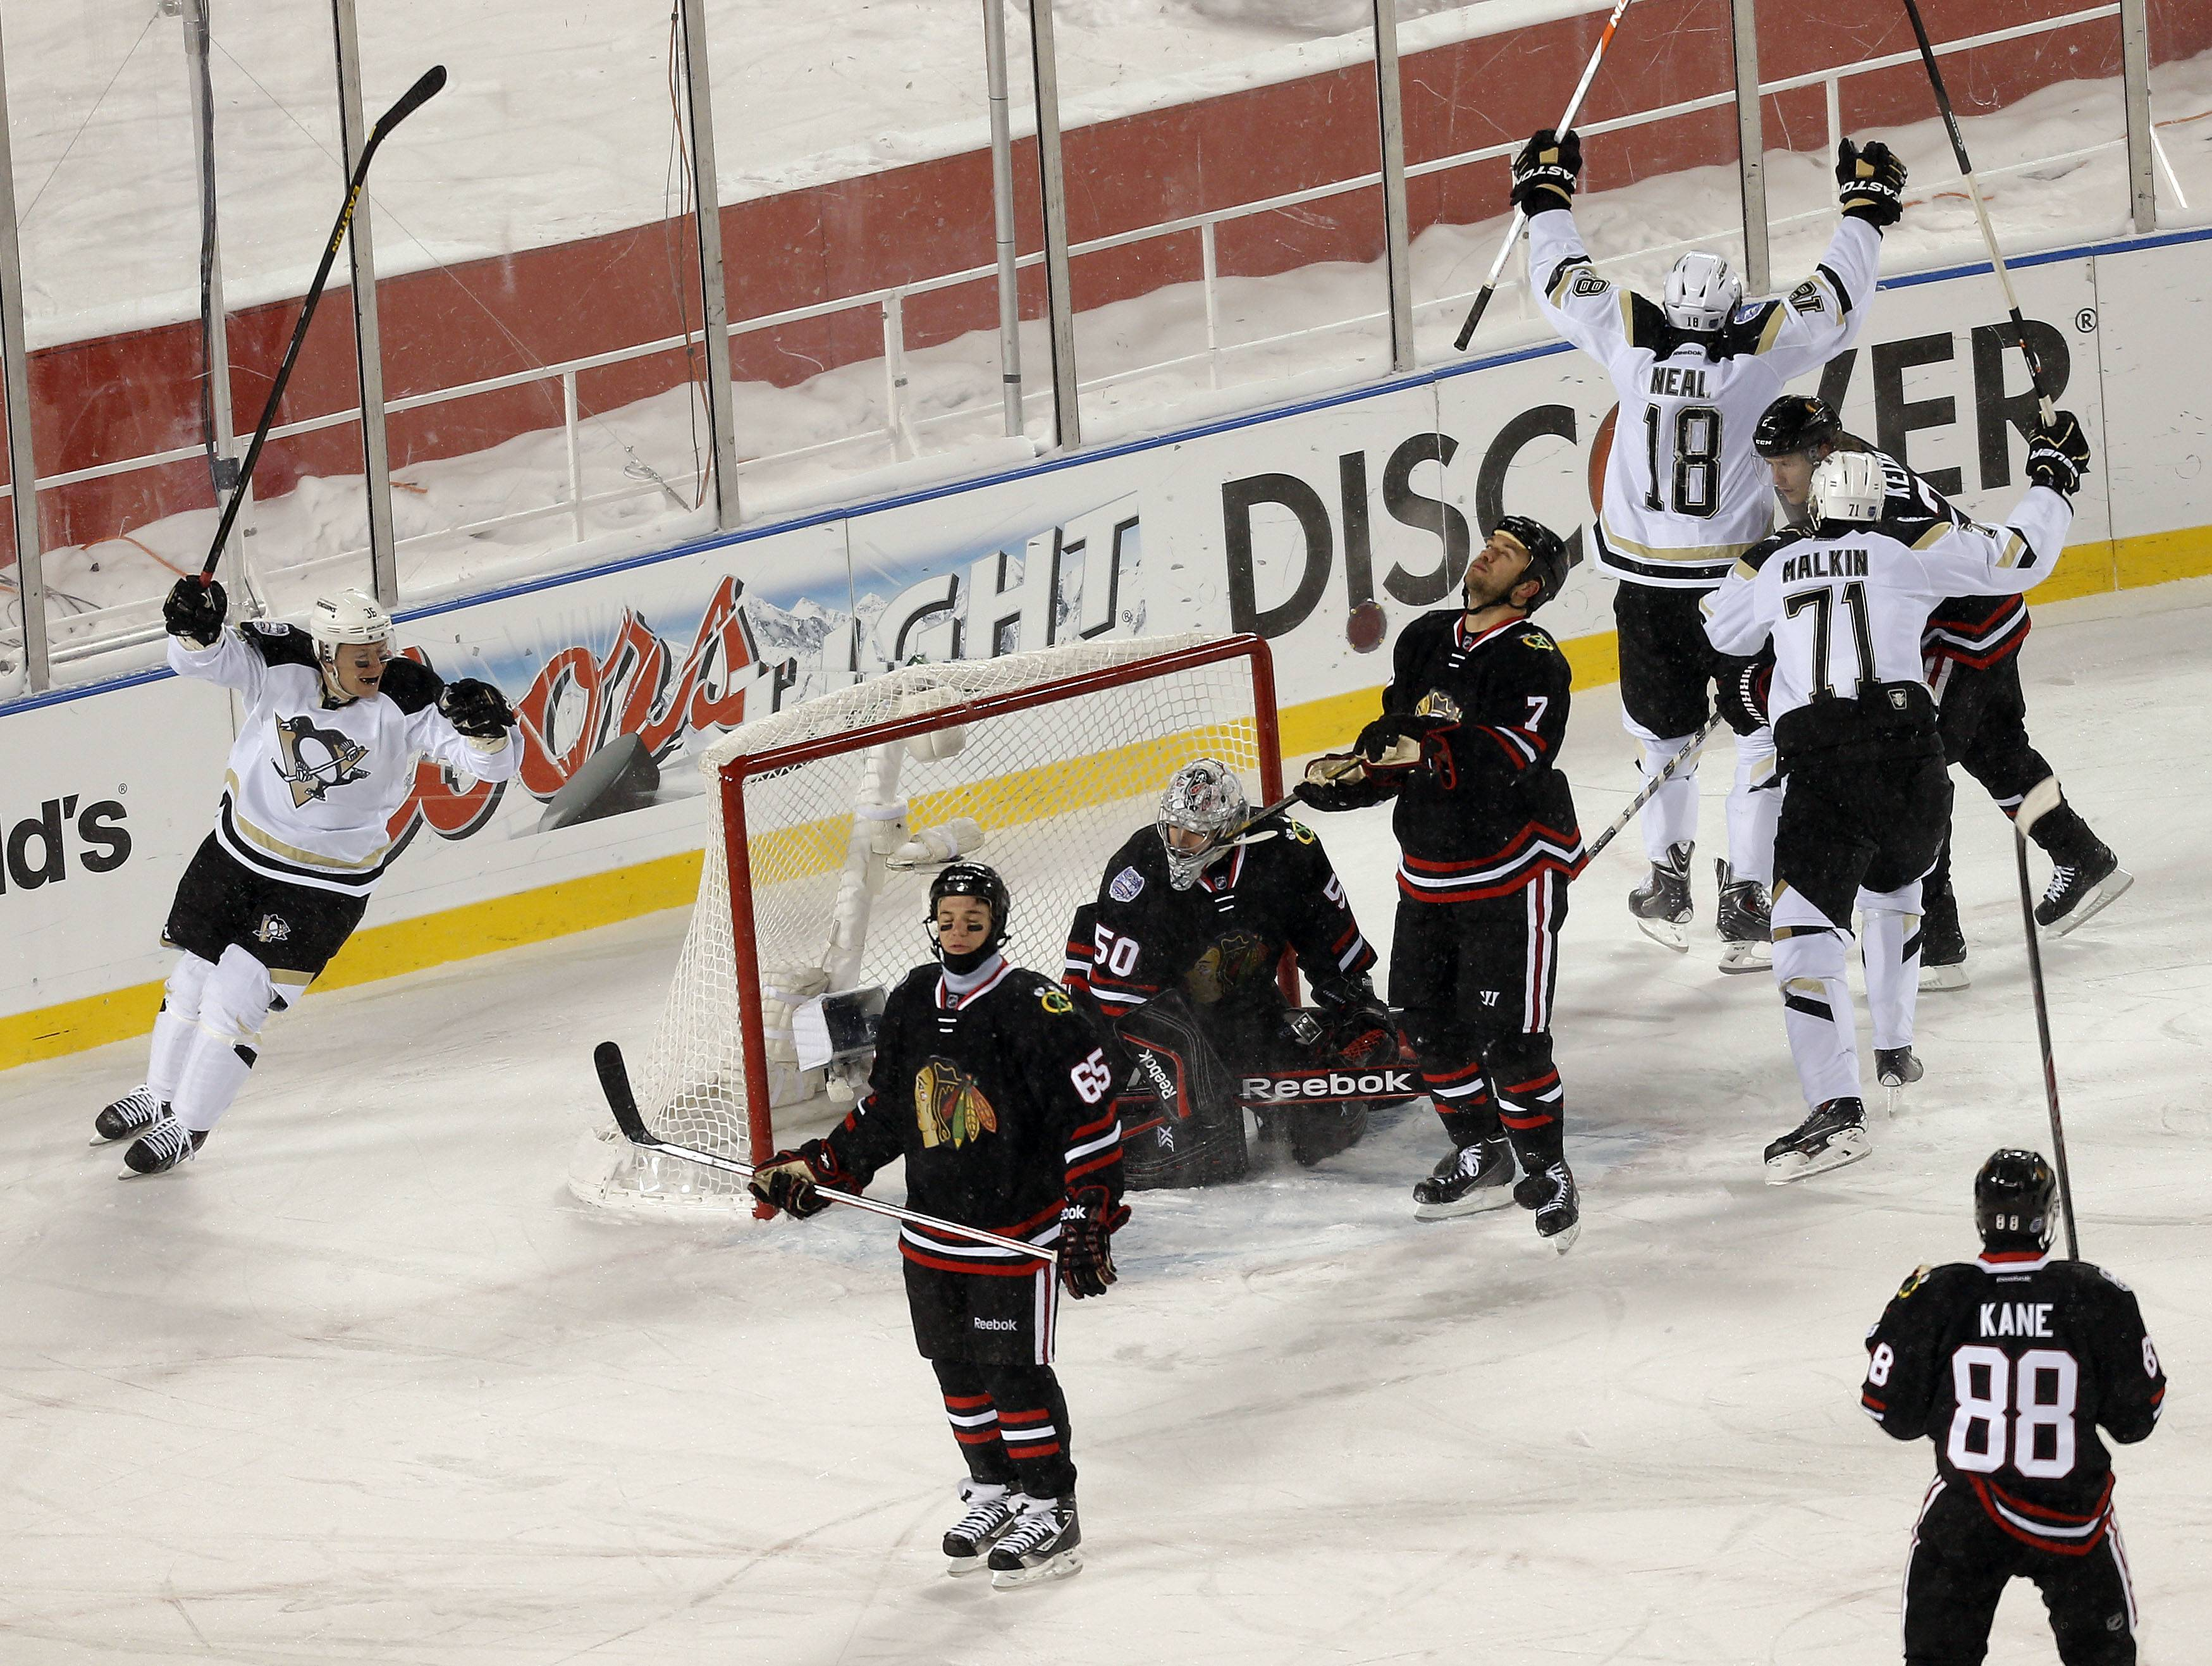 Pittsburg players react after scoring in the third period during the NHL Stadium Series between the Blackhawks and the Penguins Saturday at Soldier Field.